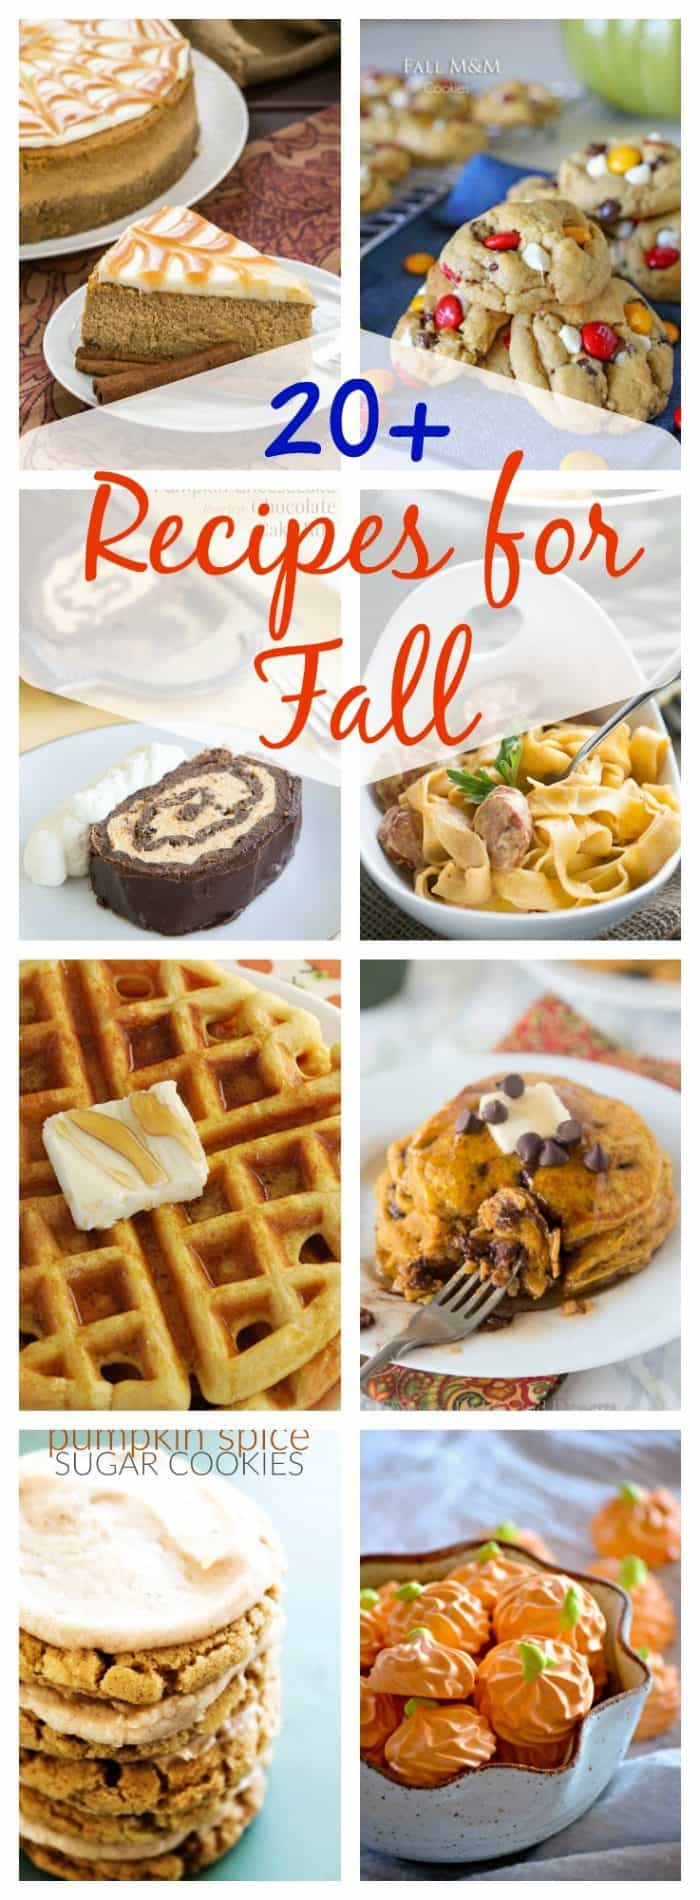 Perfect recipes for fall!